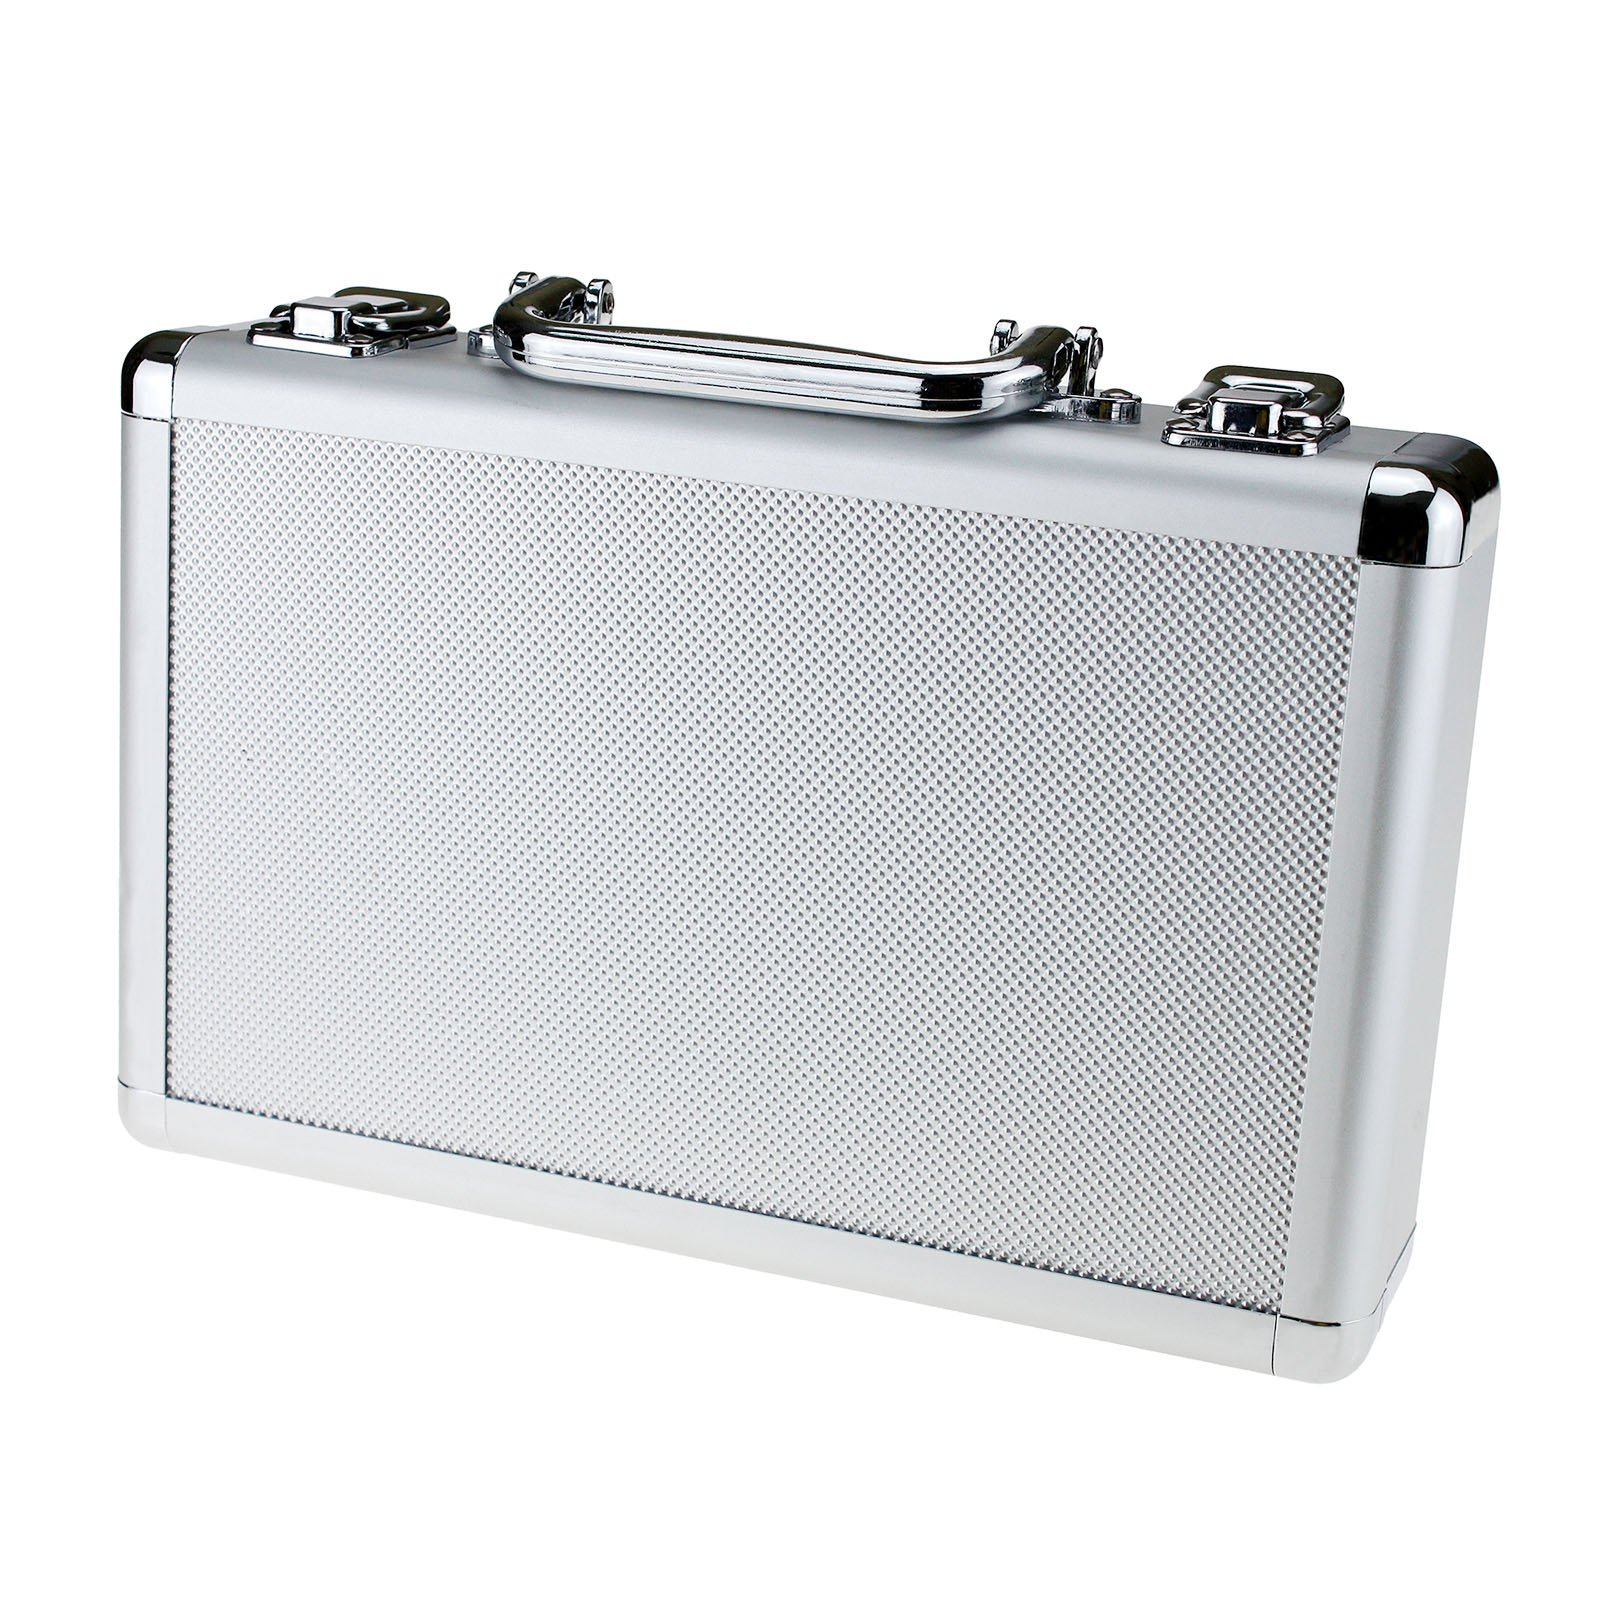 Aluminum Tool Holder Box Case Flight Briefcase with Foam Backing by Creative-Idea